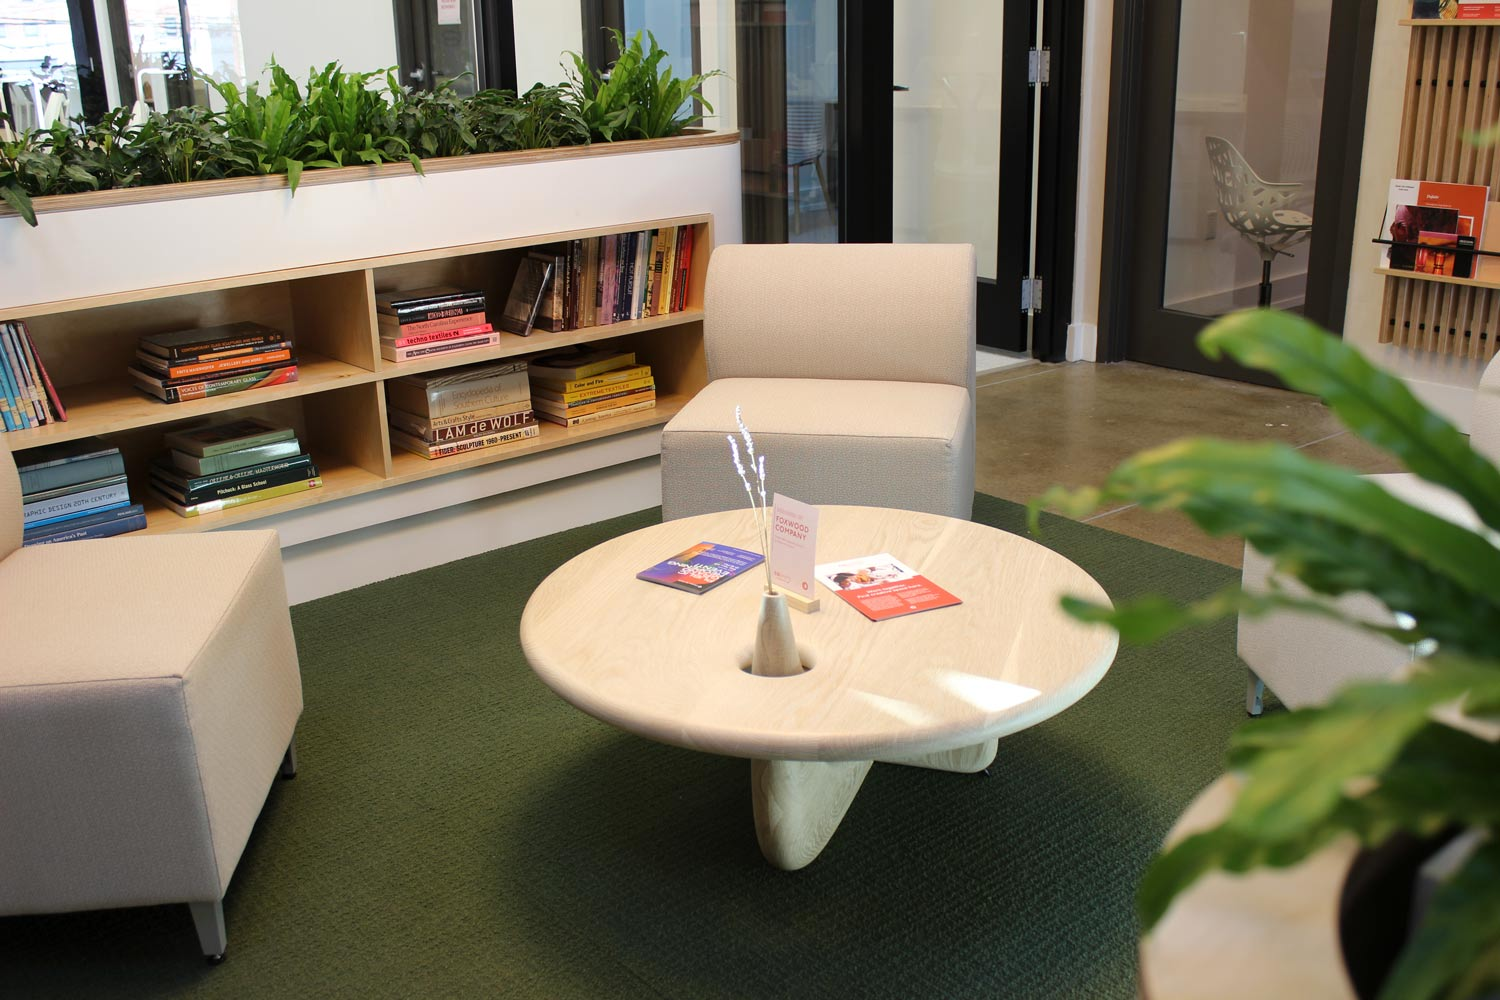 A seating area with two plush chairs, a small table, and a bookshelf.